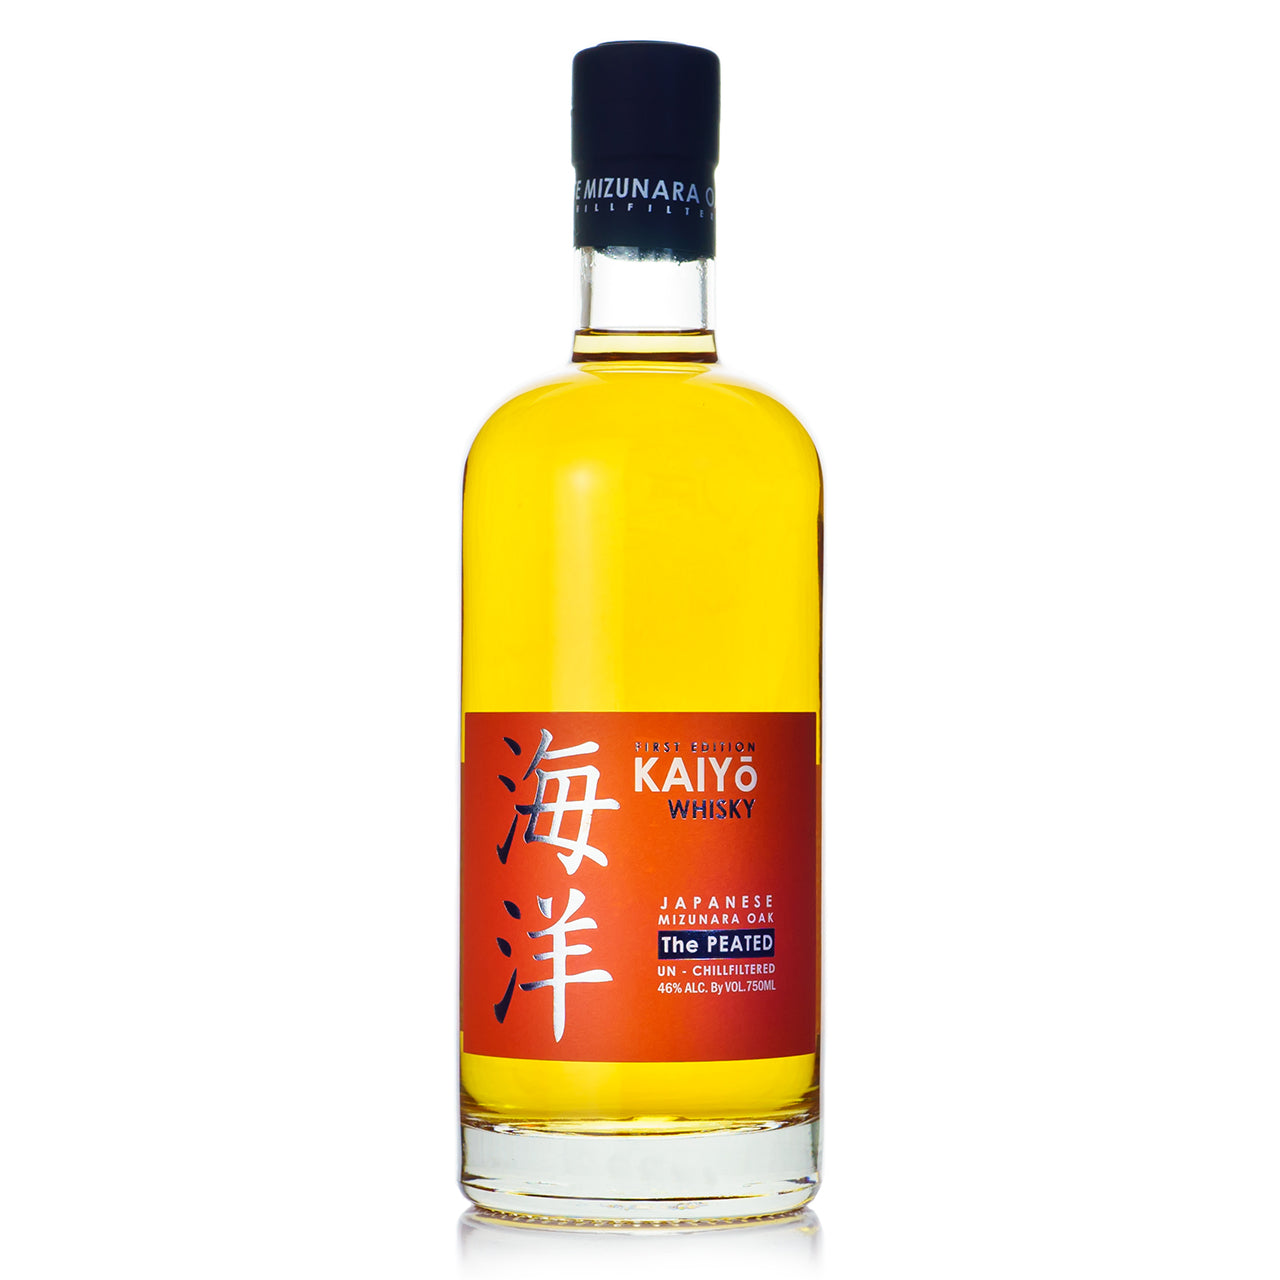 Kaiyo First Edition 'The Peated' Japanese Whisky